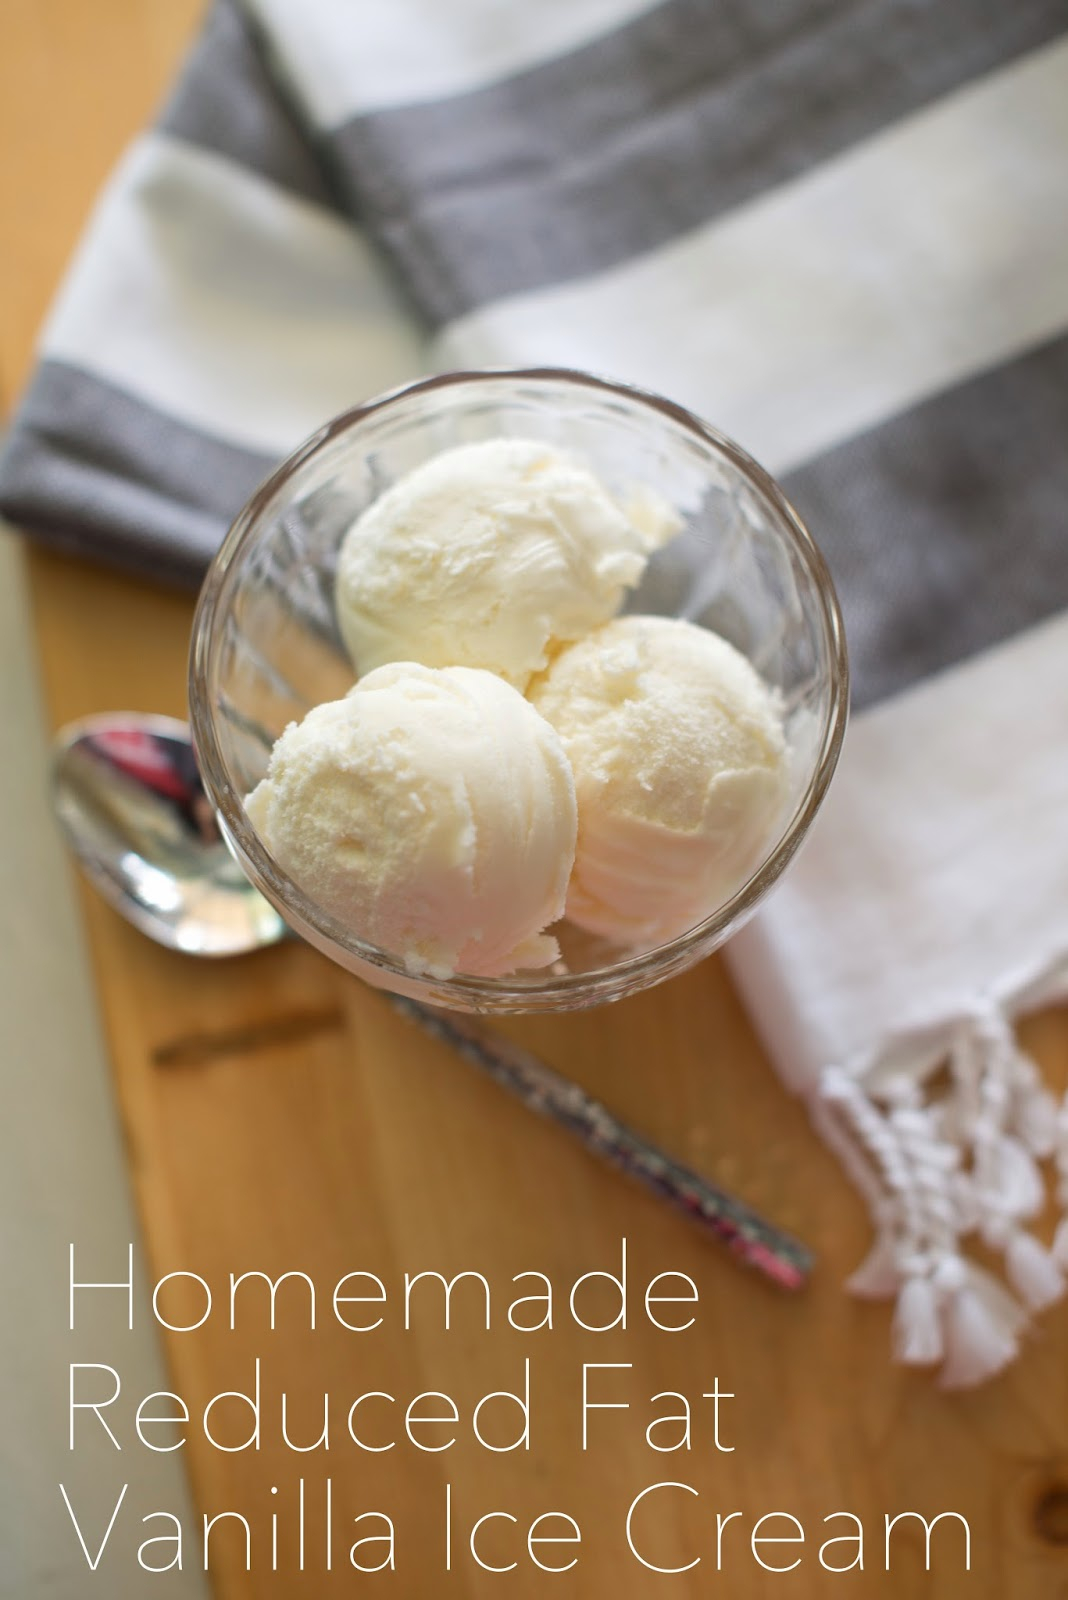 Homemade reduced fat vanilla ice cream--all the flavor of homemade ice cream without all the fat!